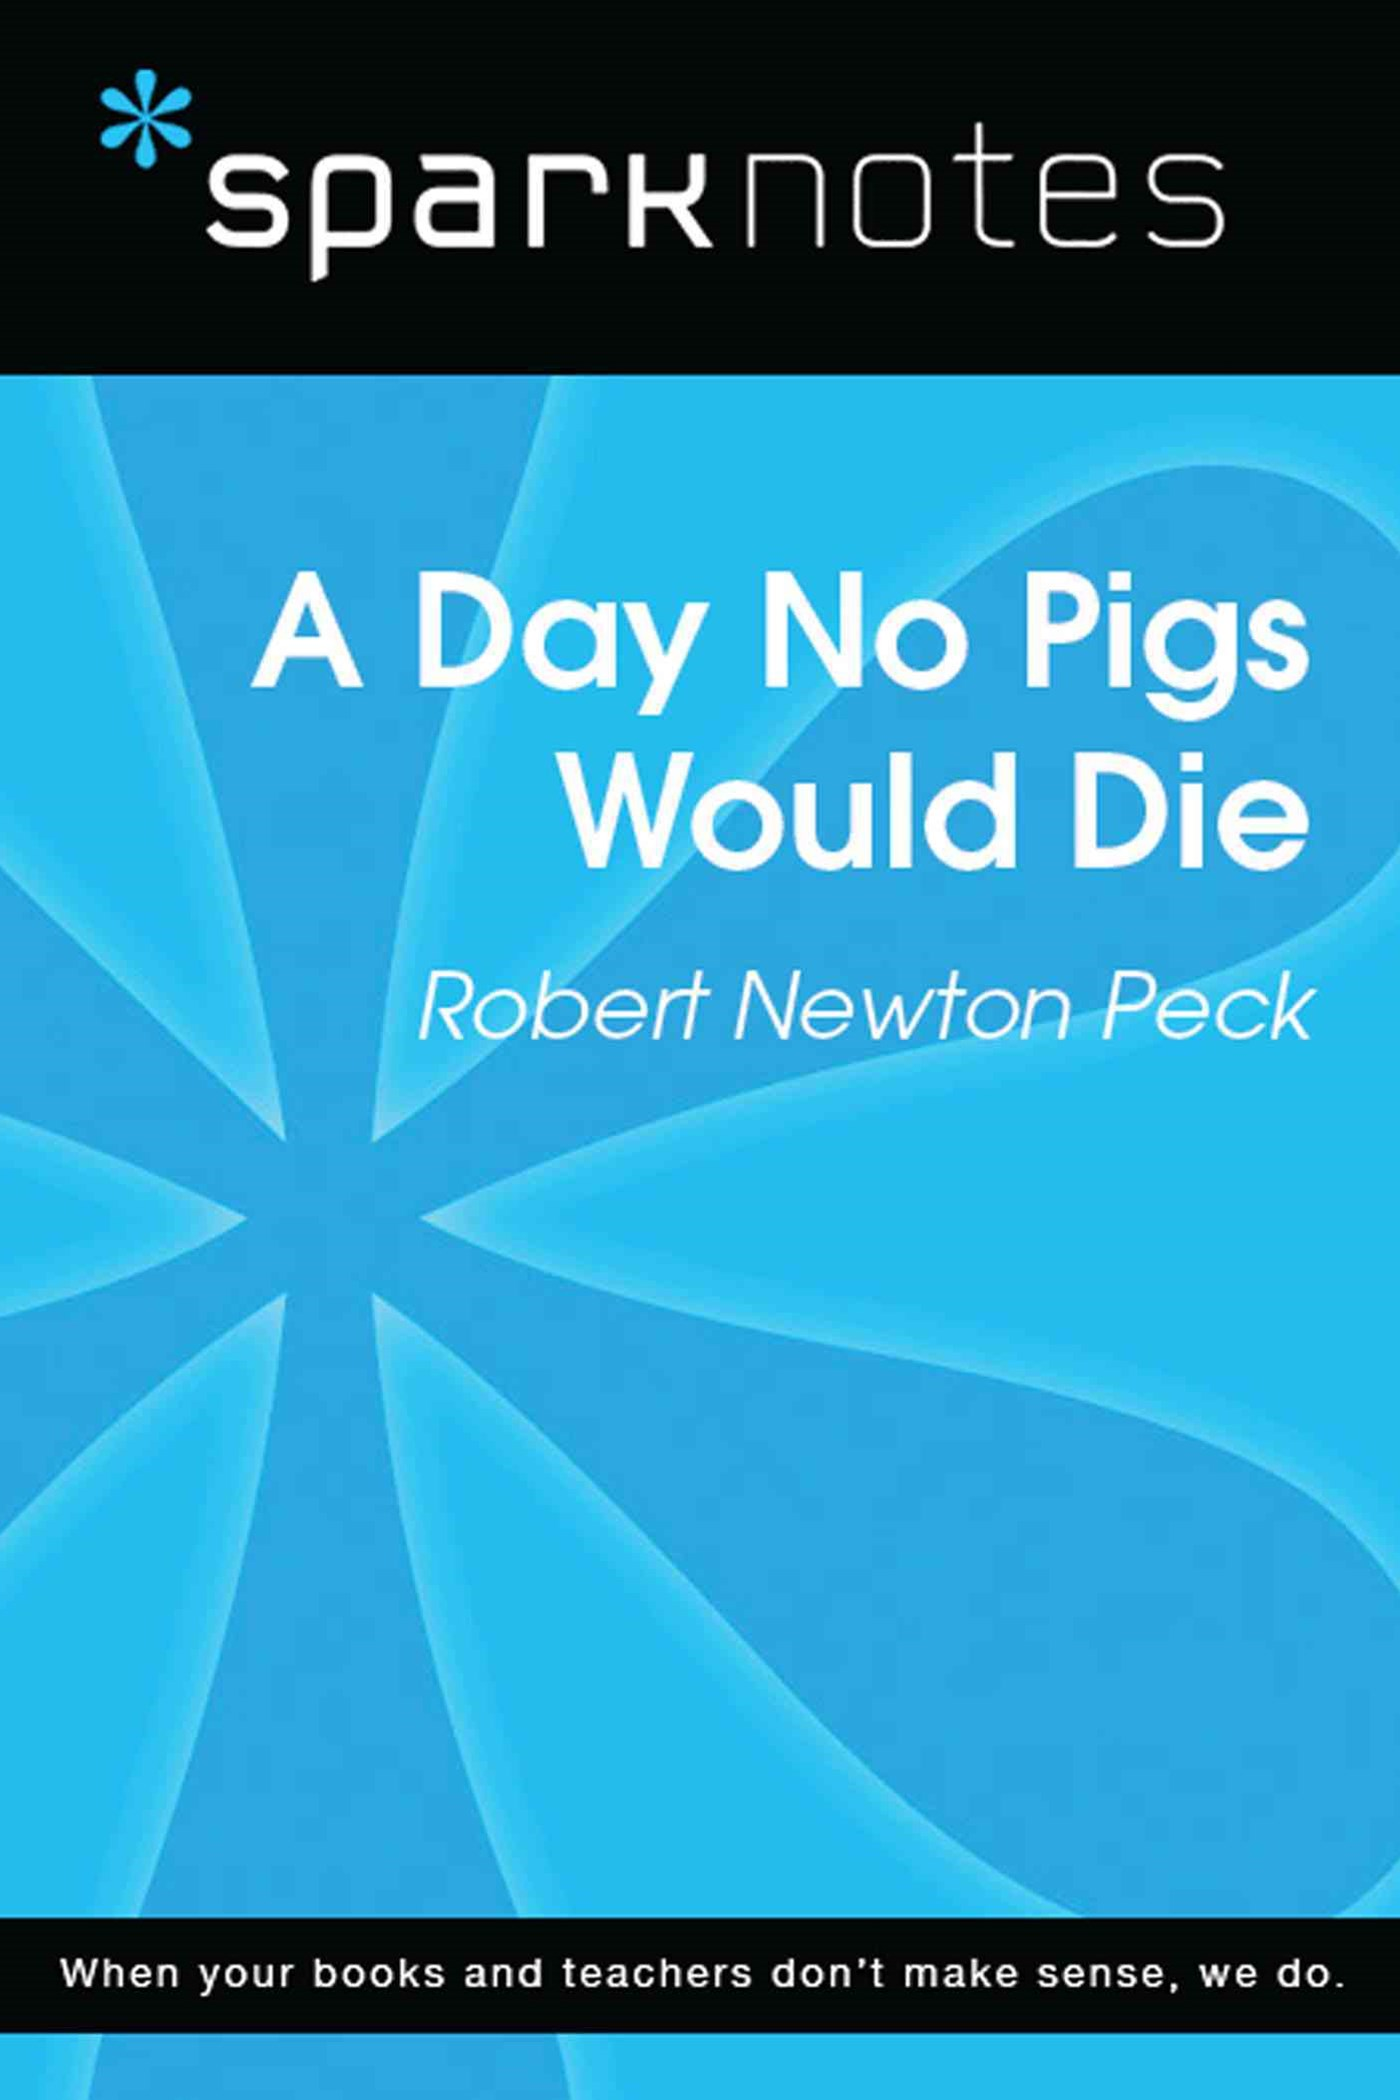 A Day No Pigs Would Die (SparkNotes Literature Guide)